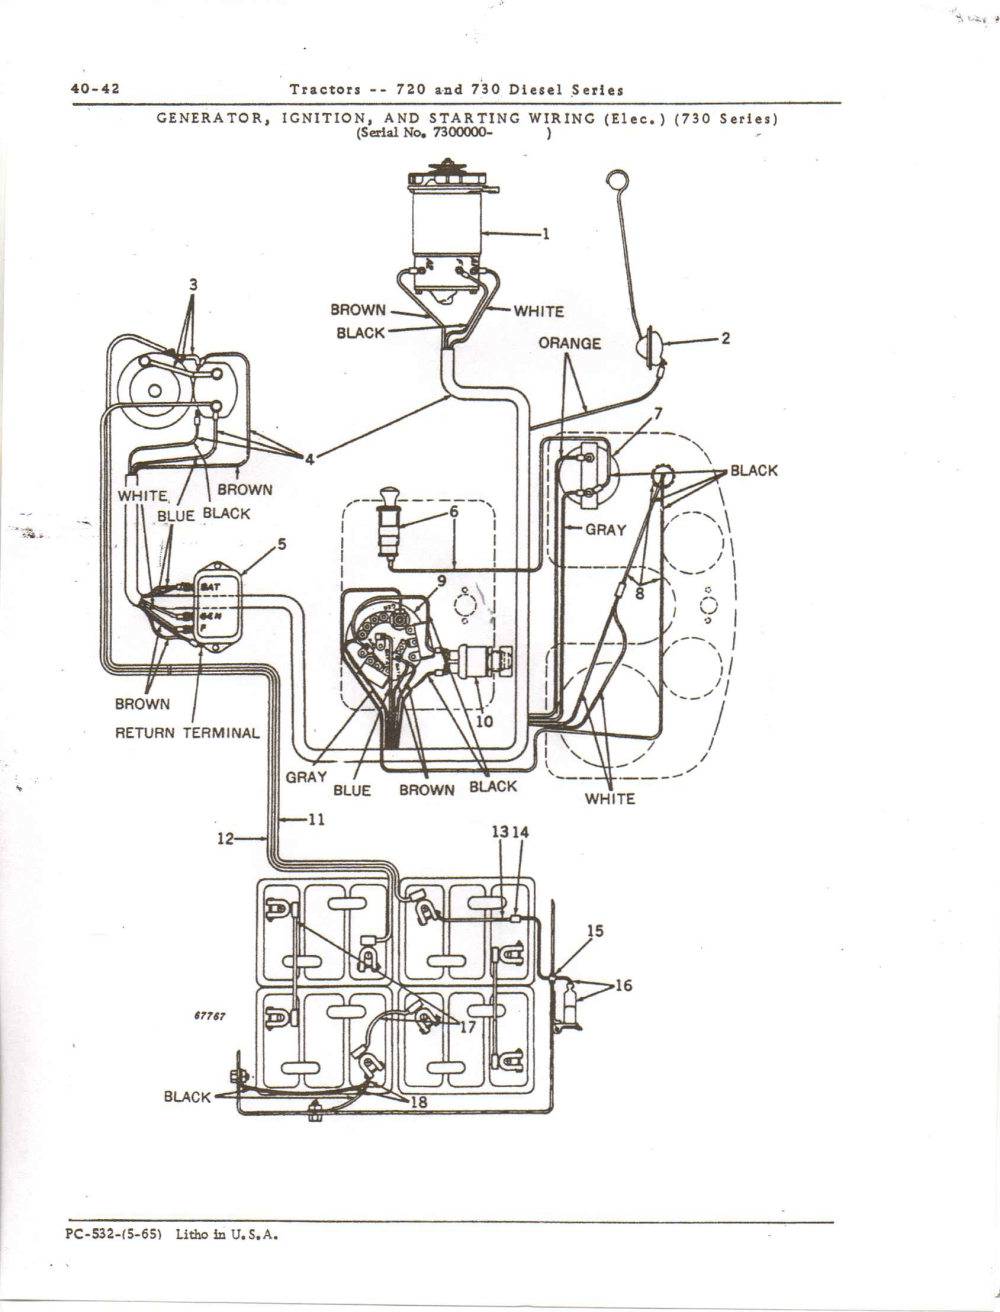 medium resolution of john deere 620 wiring moreover john deere lawn tractor voltage wiring diagram for a 97 john deere gator 4x2 wiring diagram for john deere g